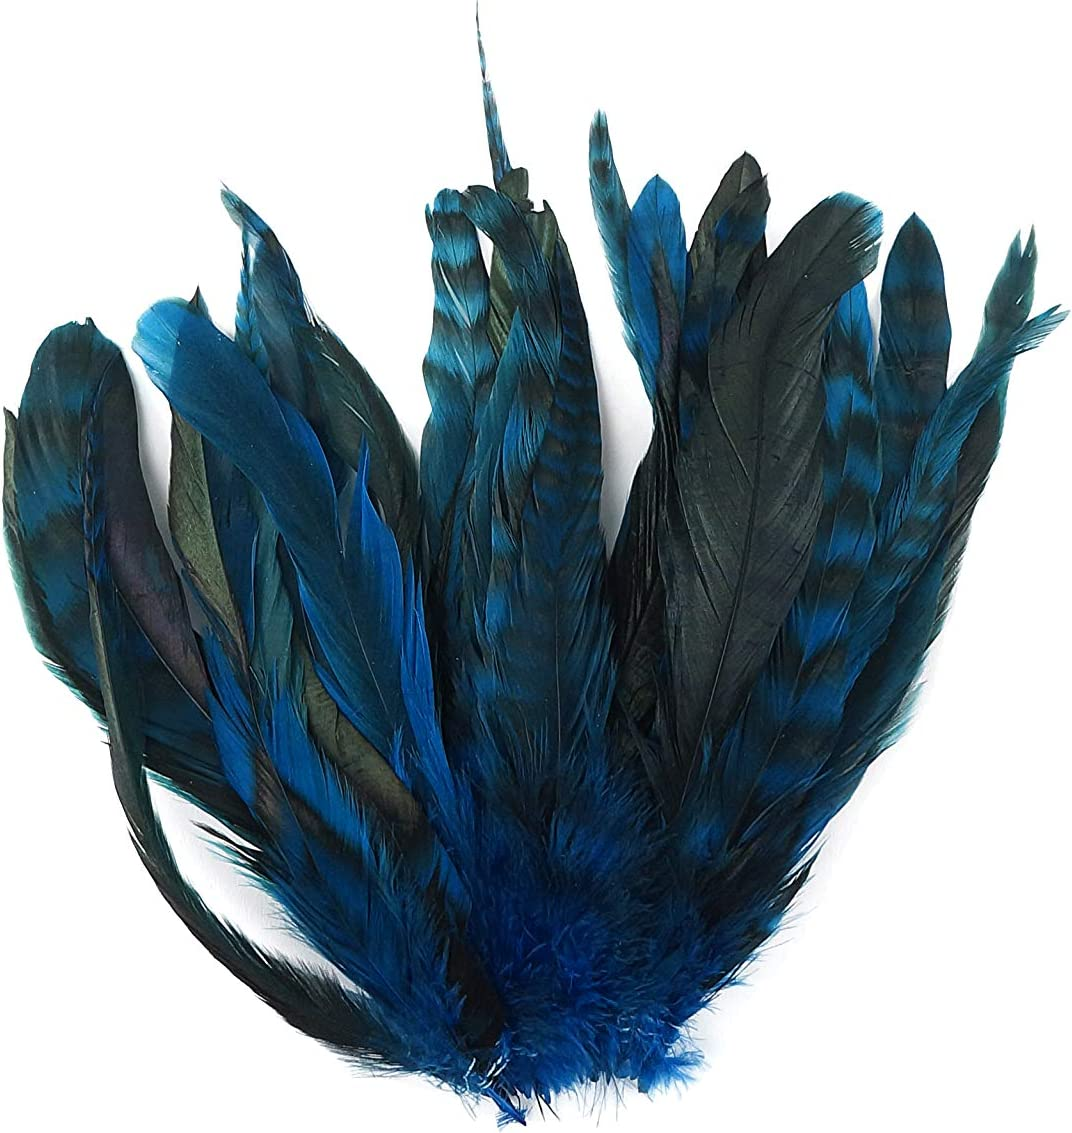 ZUCKER 25pc Rooster Chinchilla Tail Feathers - 8-10 inch Colorful Rustic Craft Supply for DIY Home Decor - Dark Turquoise Blue